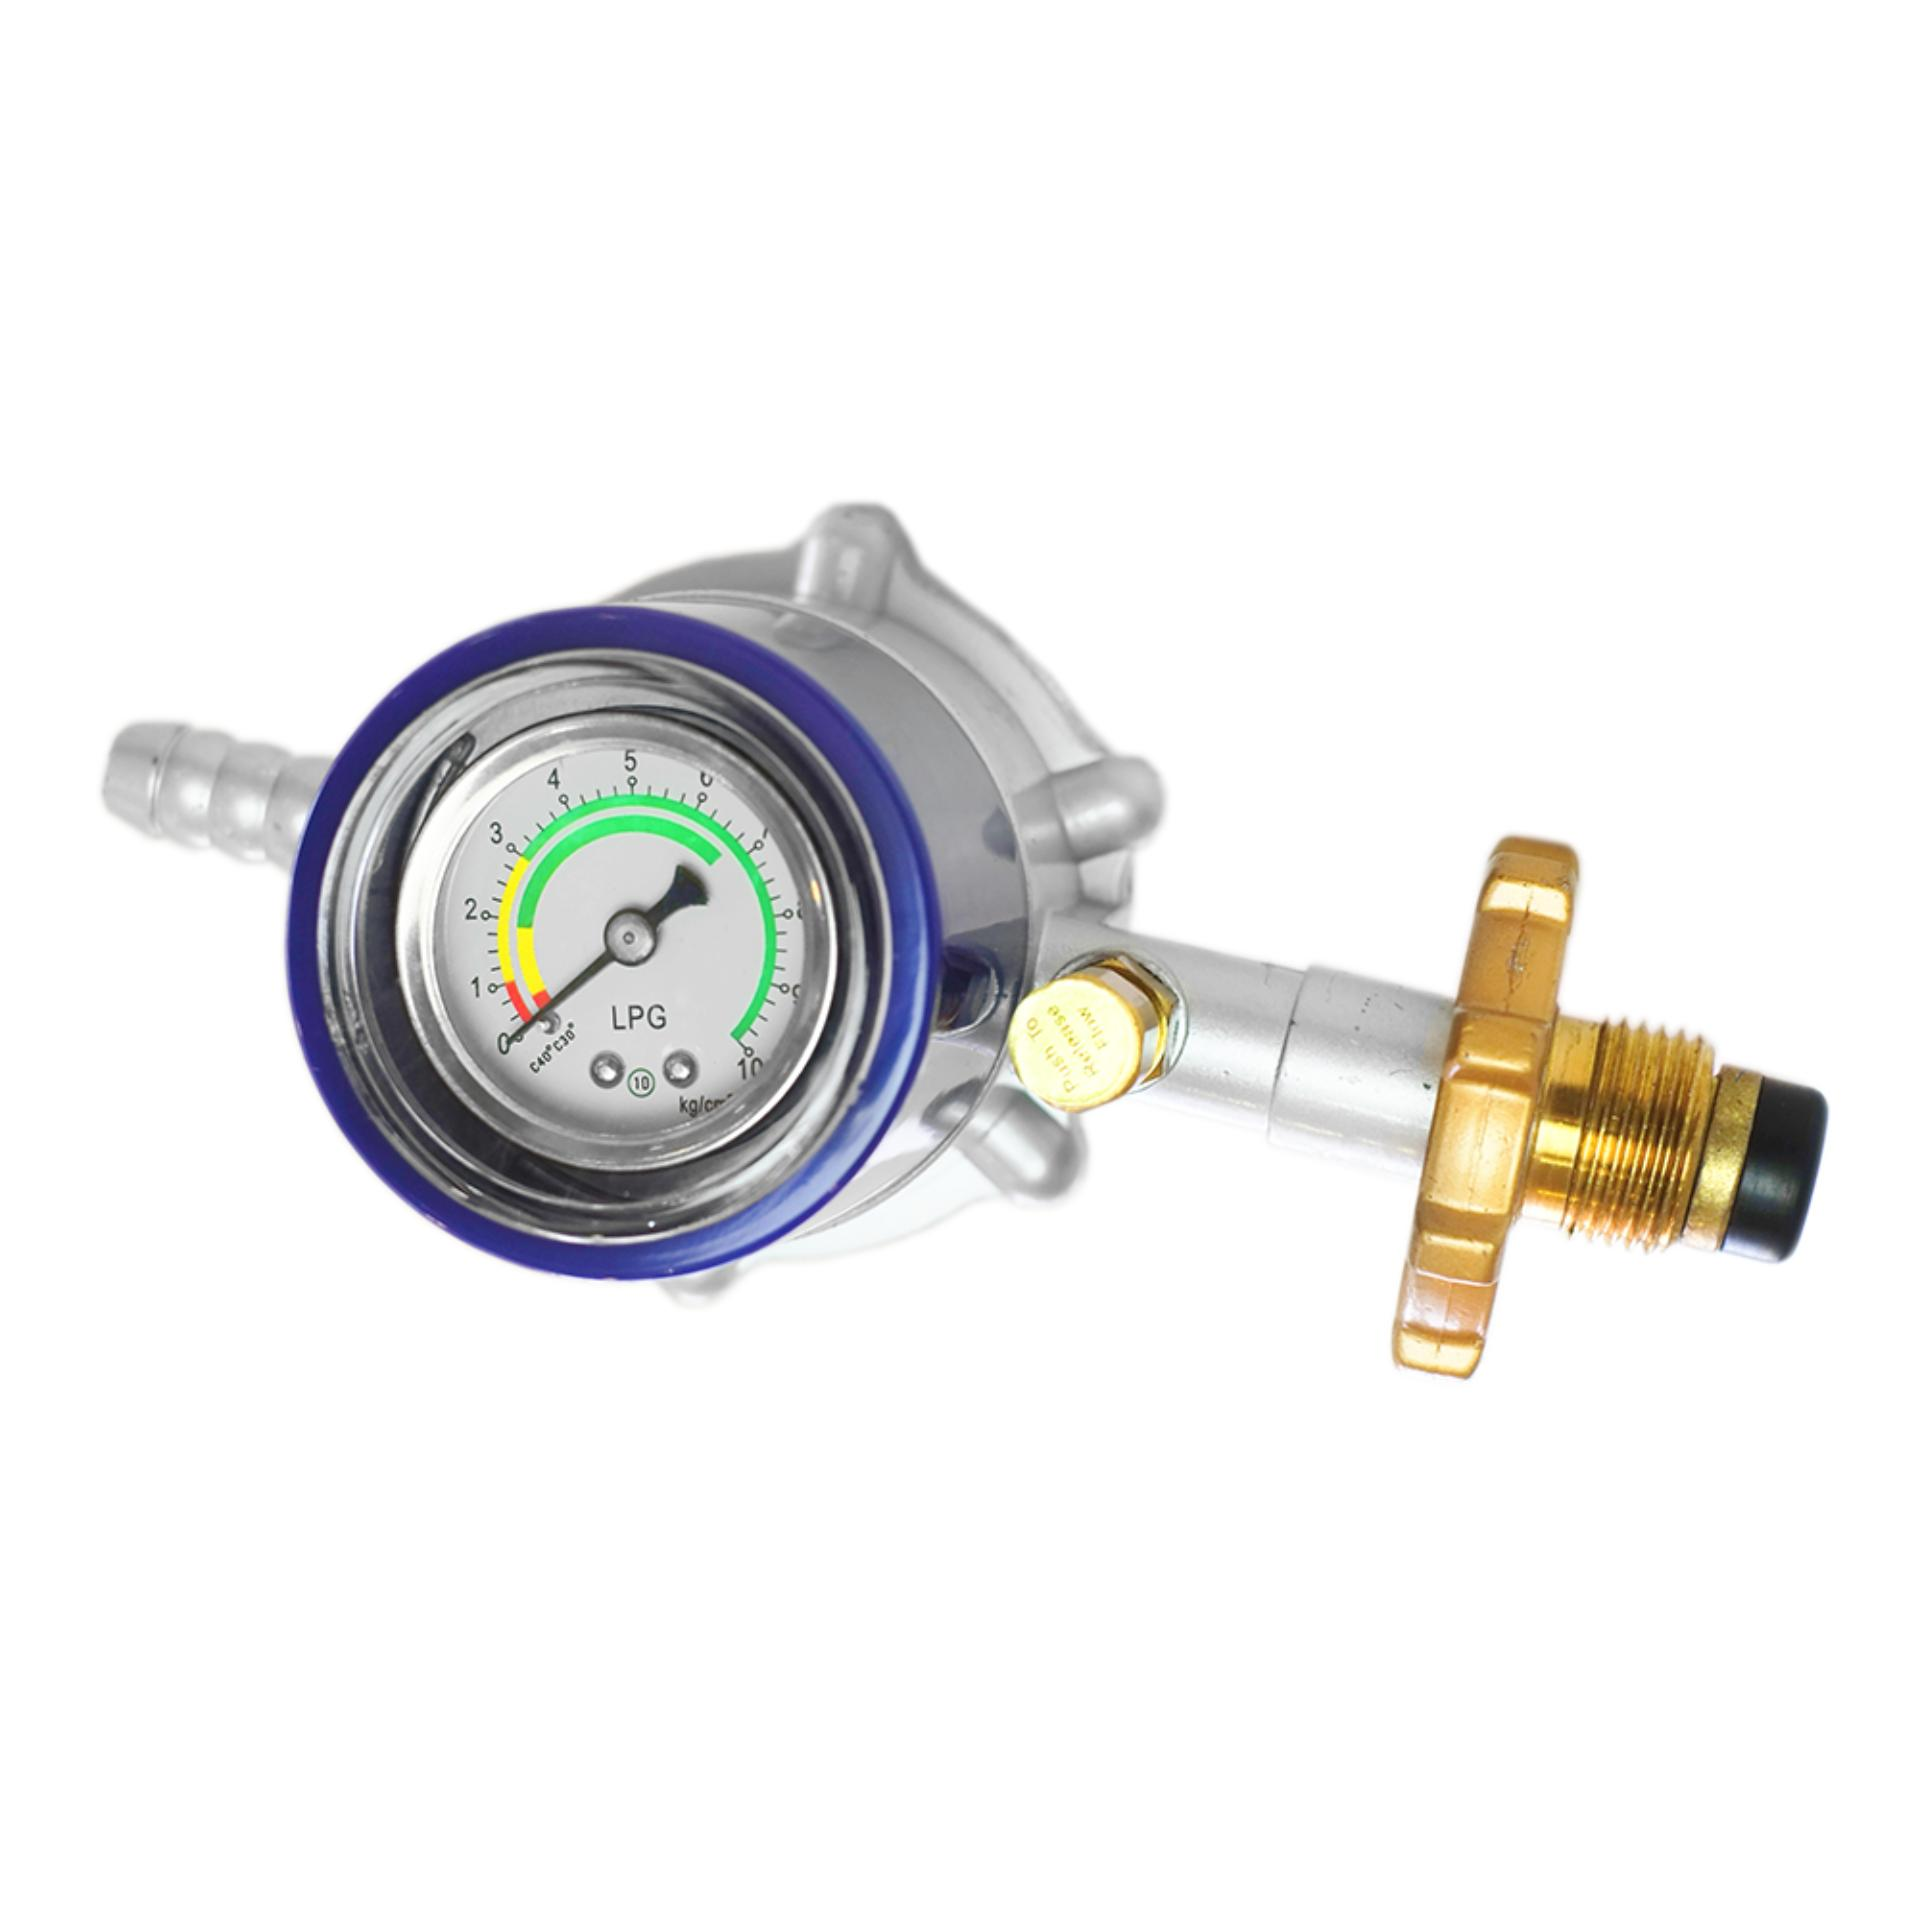 Icook Ic-777 Screw Mount Lpg Regulator W/ Anti-Leak Feature And Pressure Gauge (de-Roskas) By Citideals.